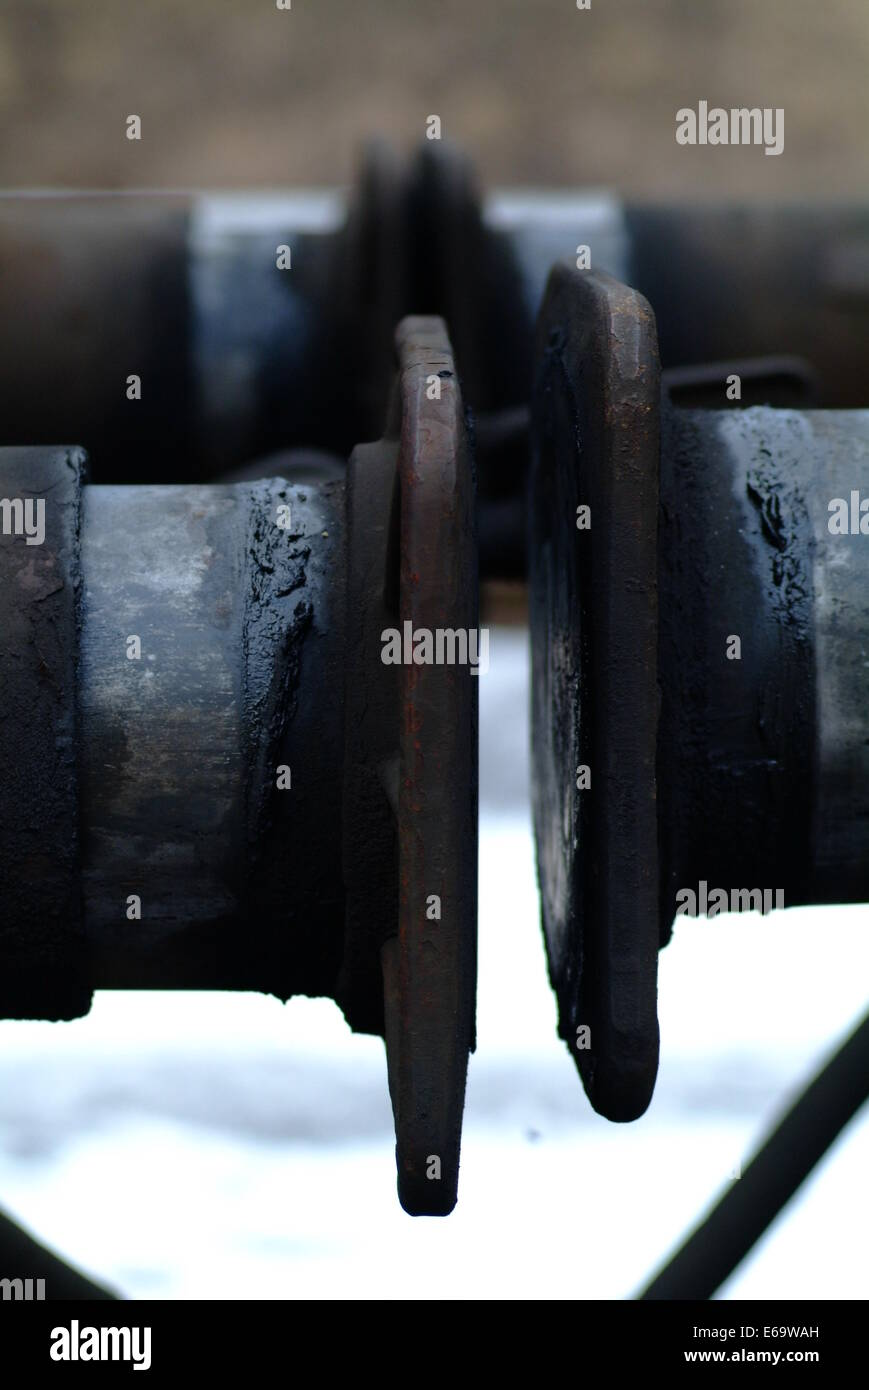 rail,connection,shock absorber - Stock Image